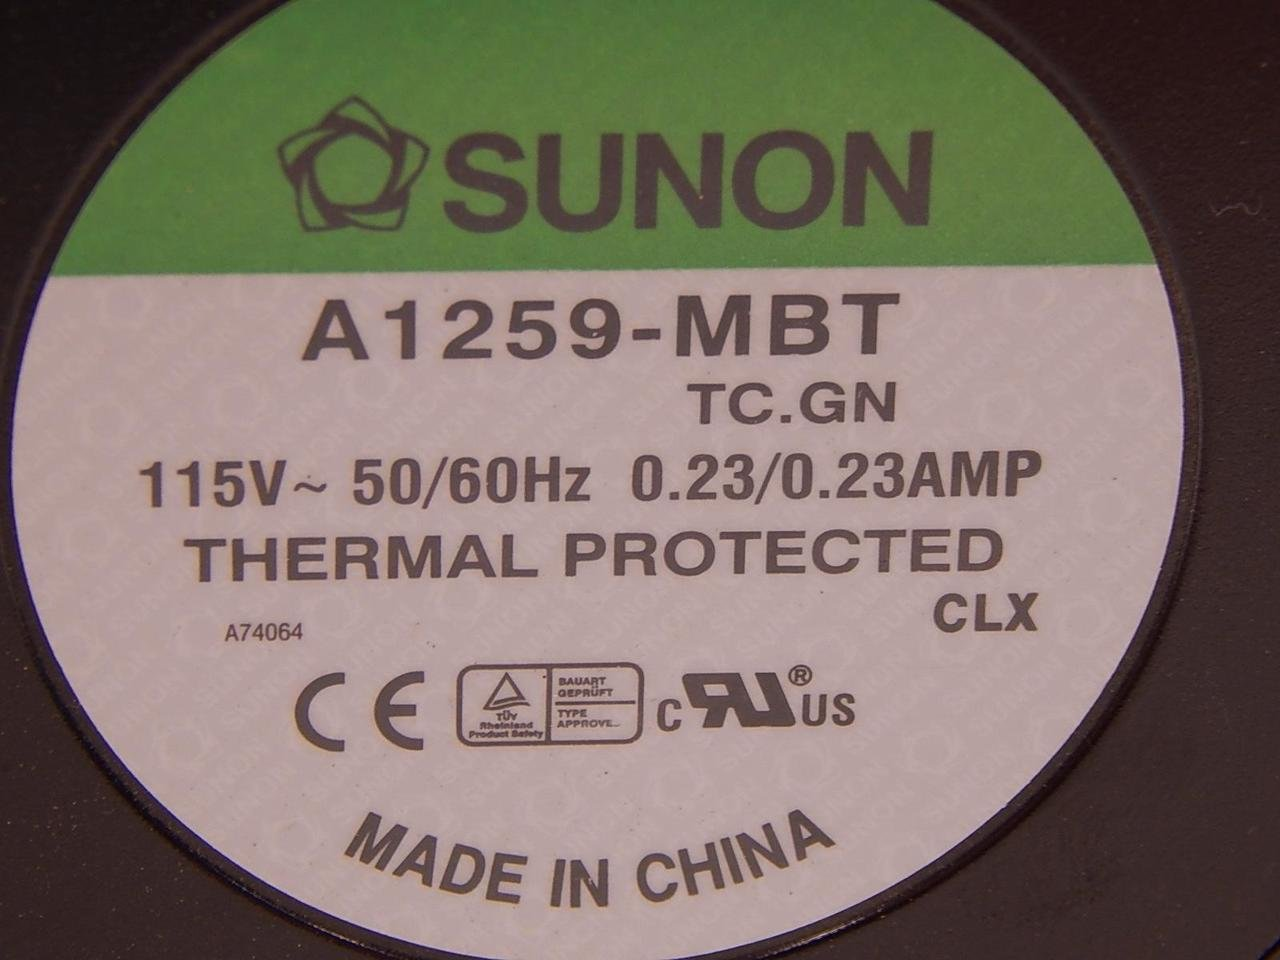 Sunon A1259-MBT Fan